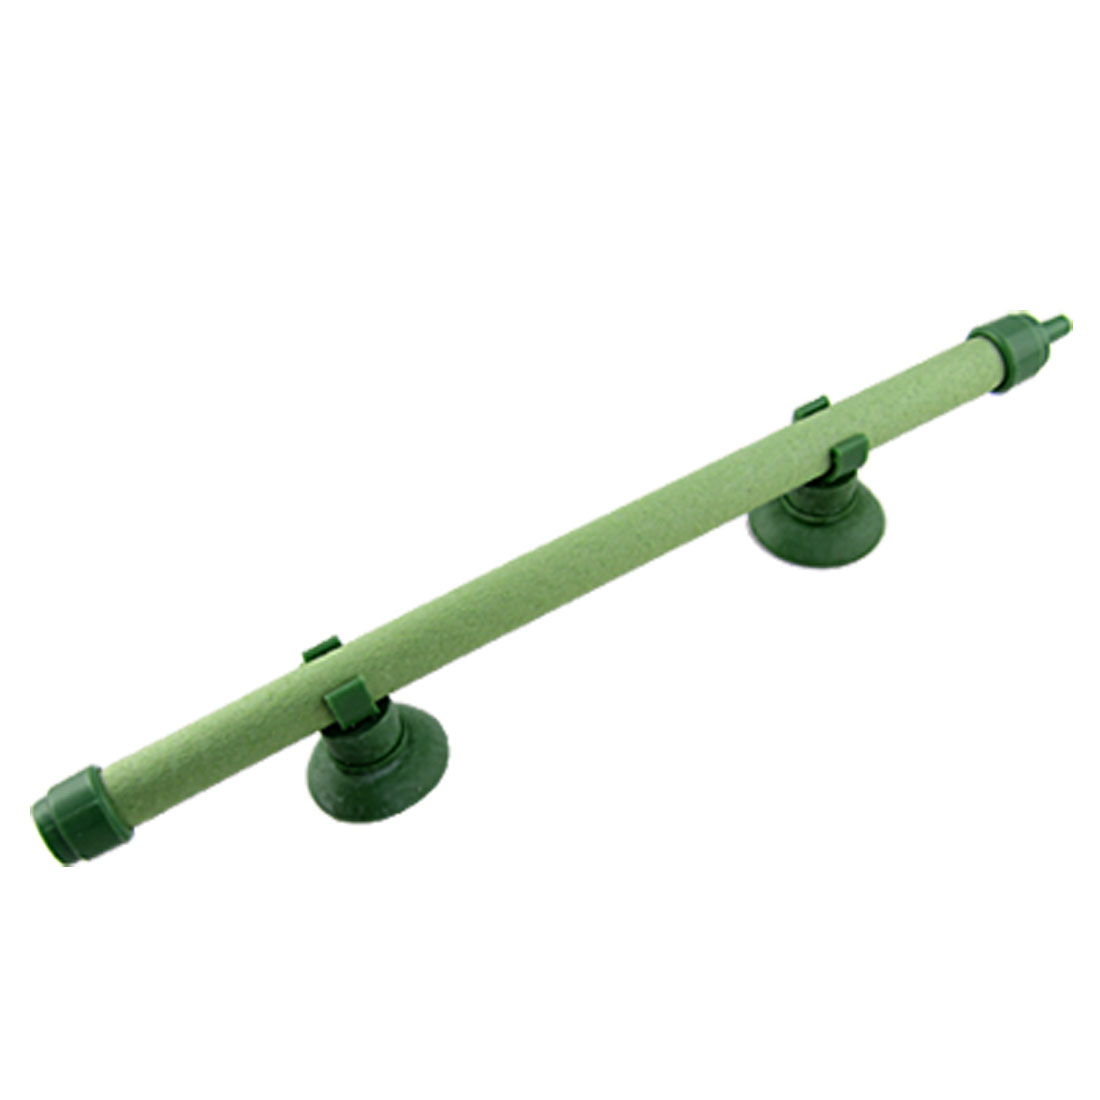 Fish Tank Aquarium Air Diffuser Tube Bubble Wall Stone Green 7 Inch Length